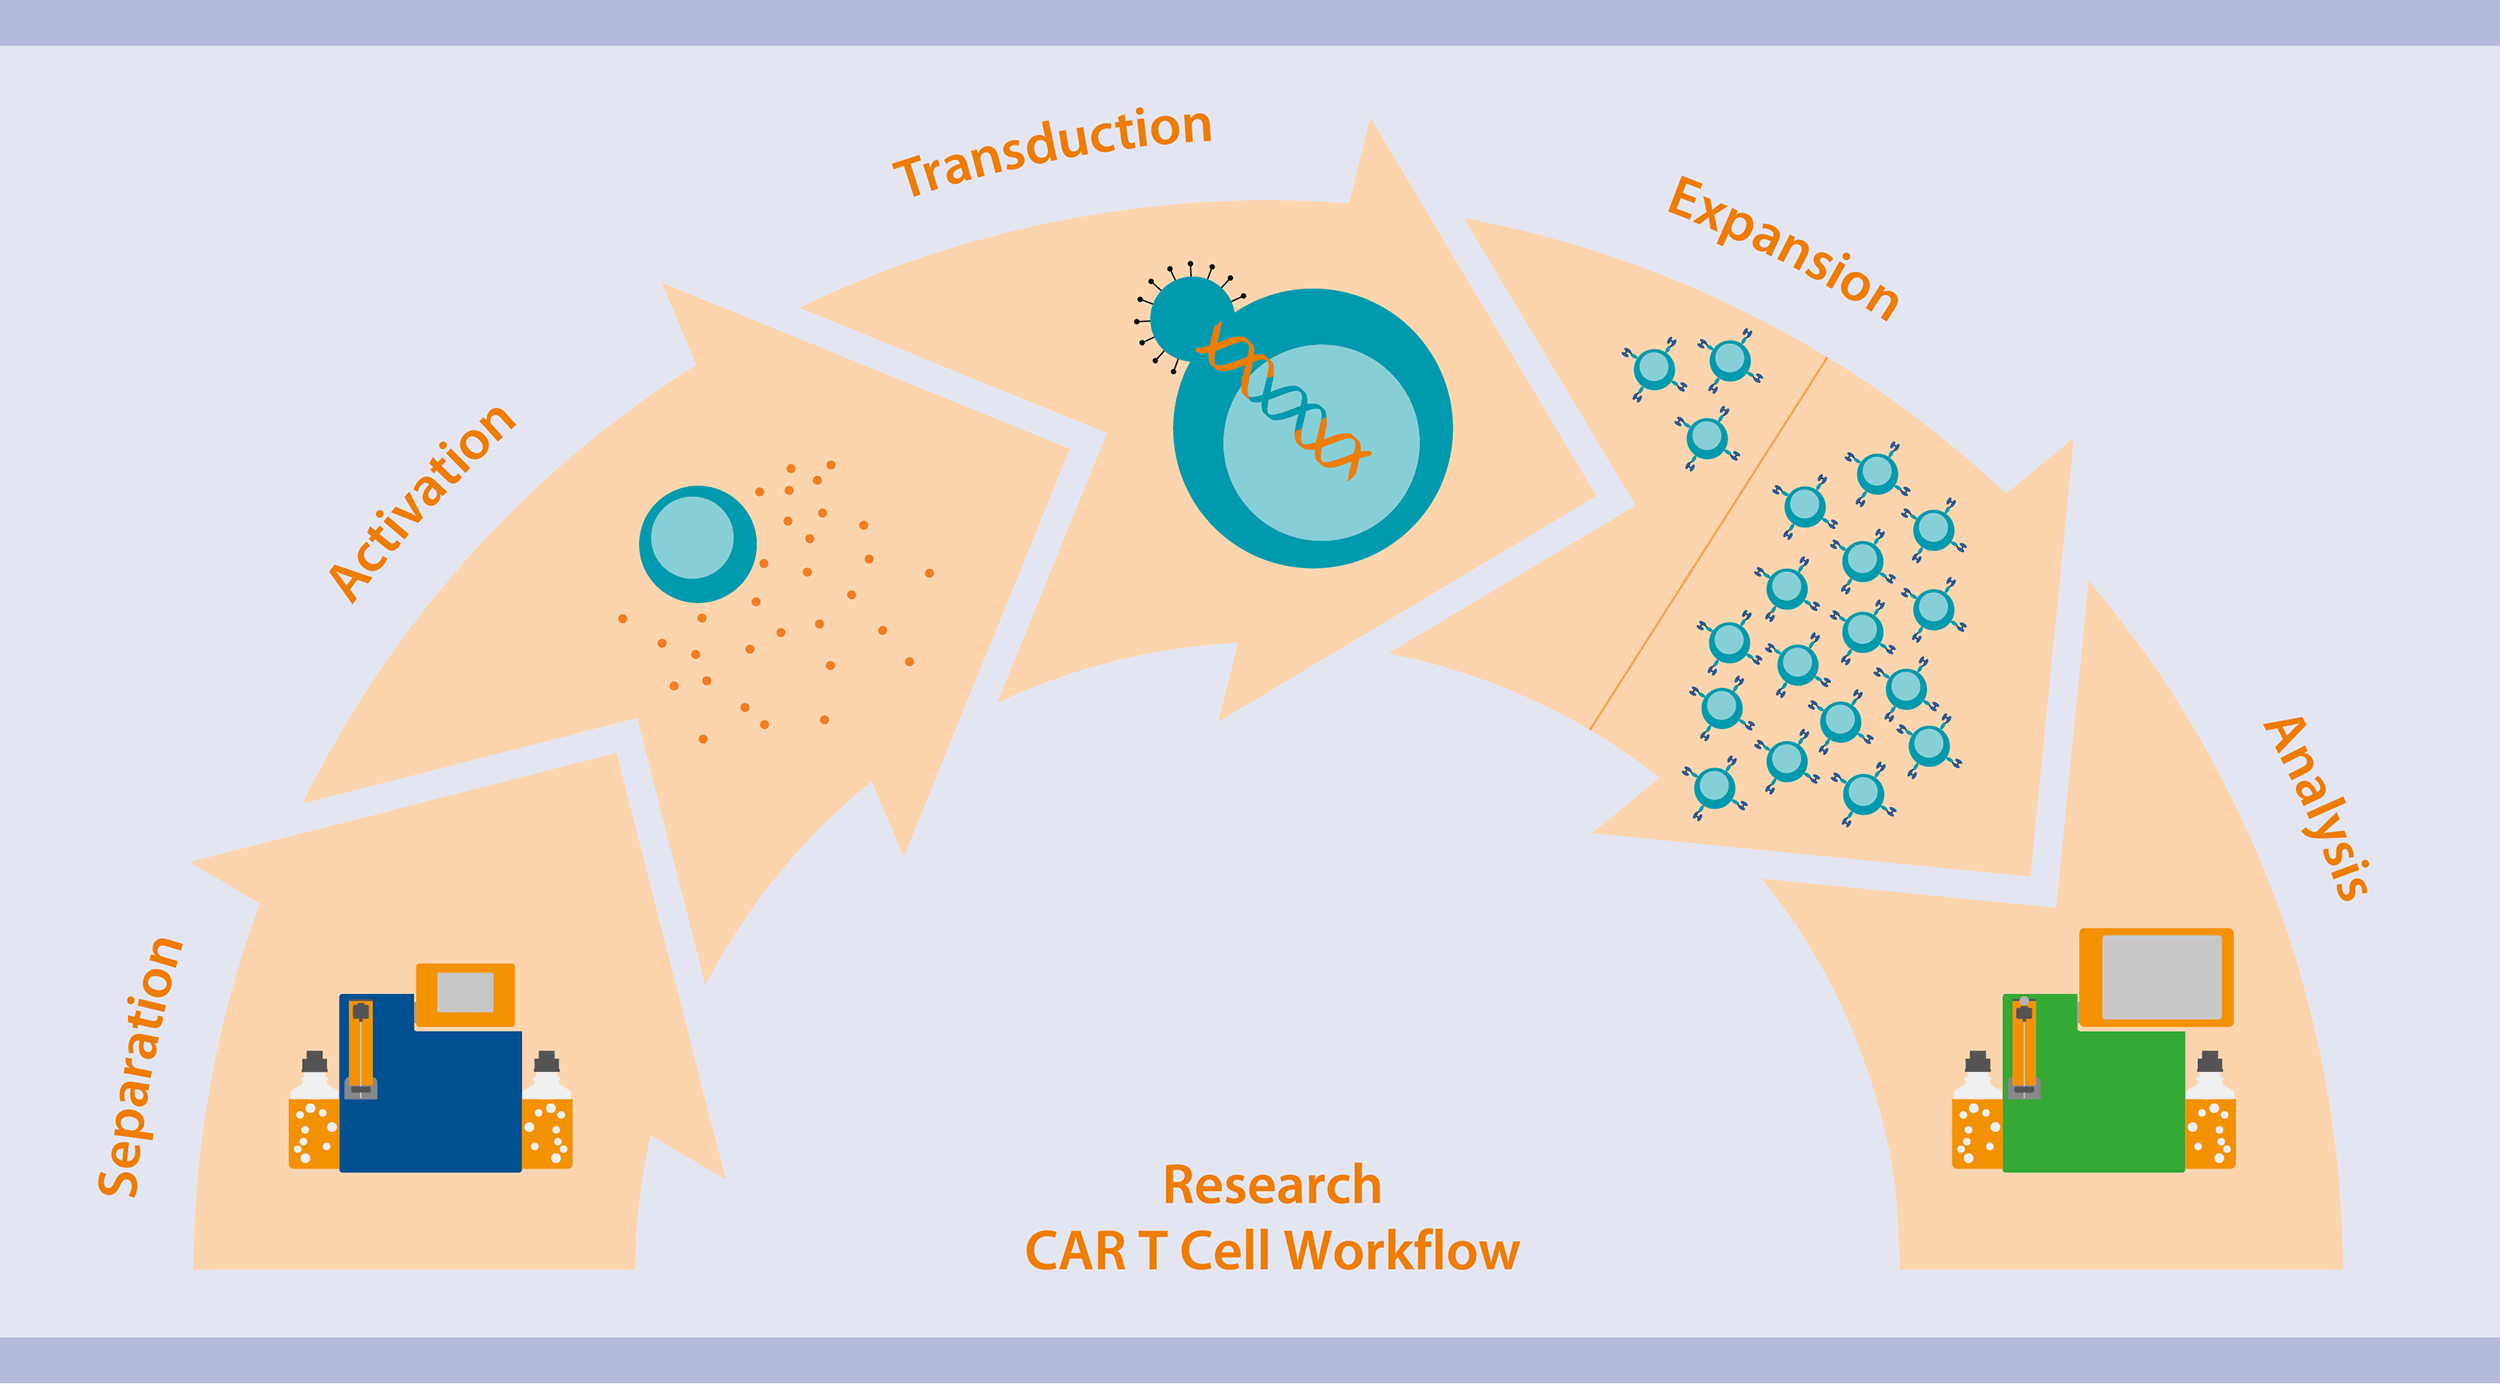 Engineered T cells for research - T cells - Applications